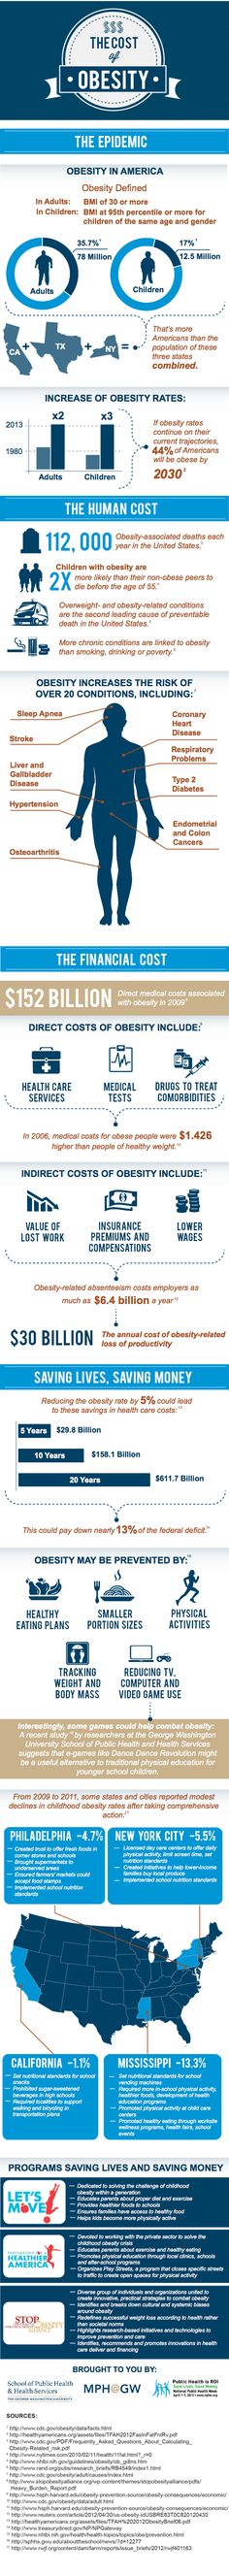 The Cost of Obesity [Infographic] - The Human Cost and the Financial Toll